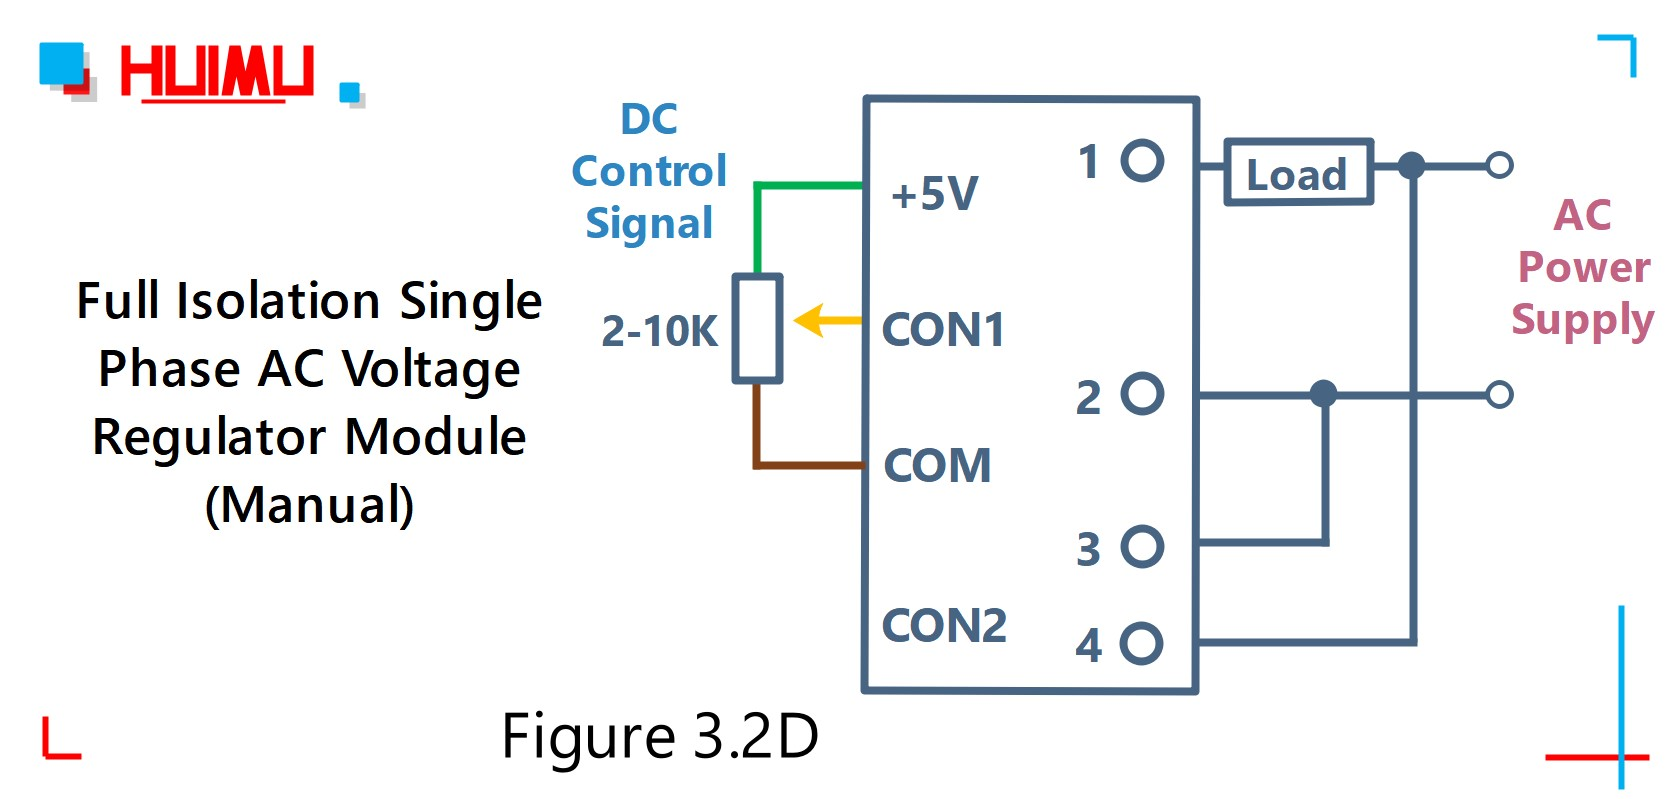 How to wire MGR mager MGR-DTY2240EG full isolation single phase AC voltage regulator? Manual type AC voltage regulator module circuit diagram, E, F, H types can be controlled by manual, and G type cannot. More detail via www.@huimultd.com